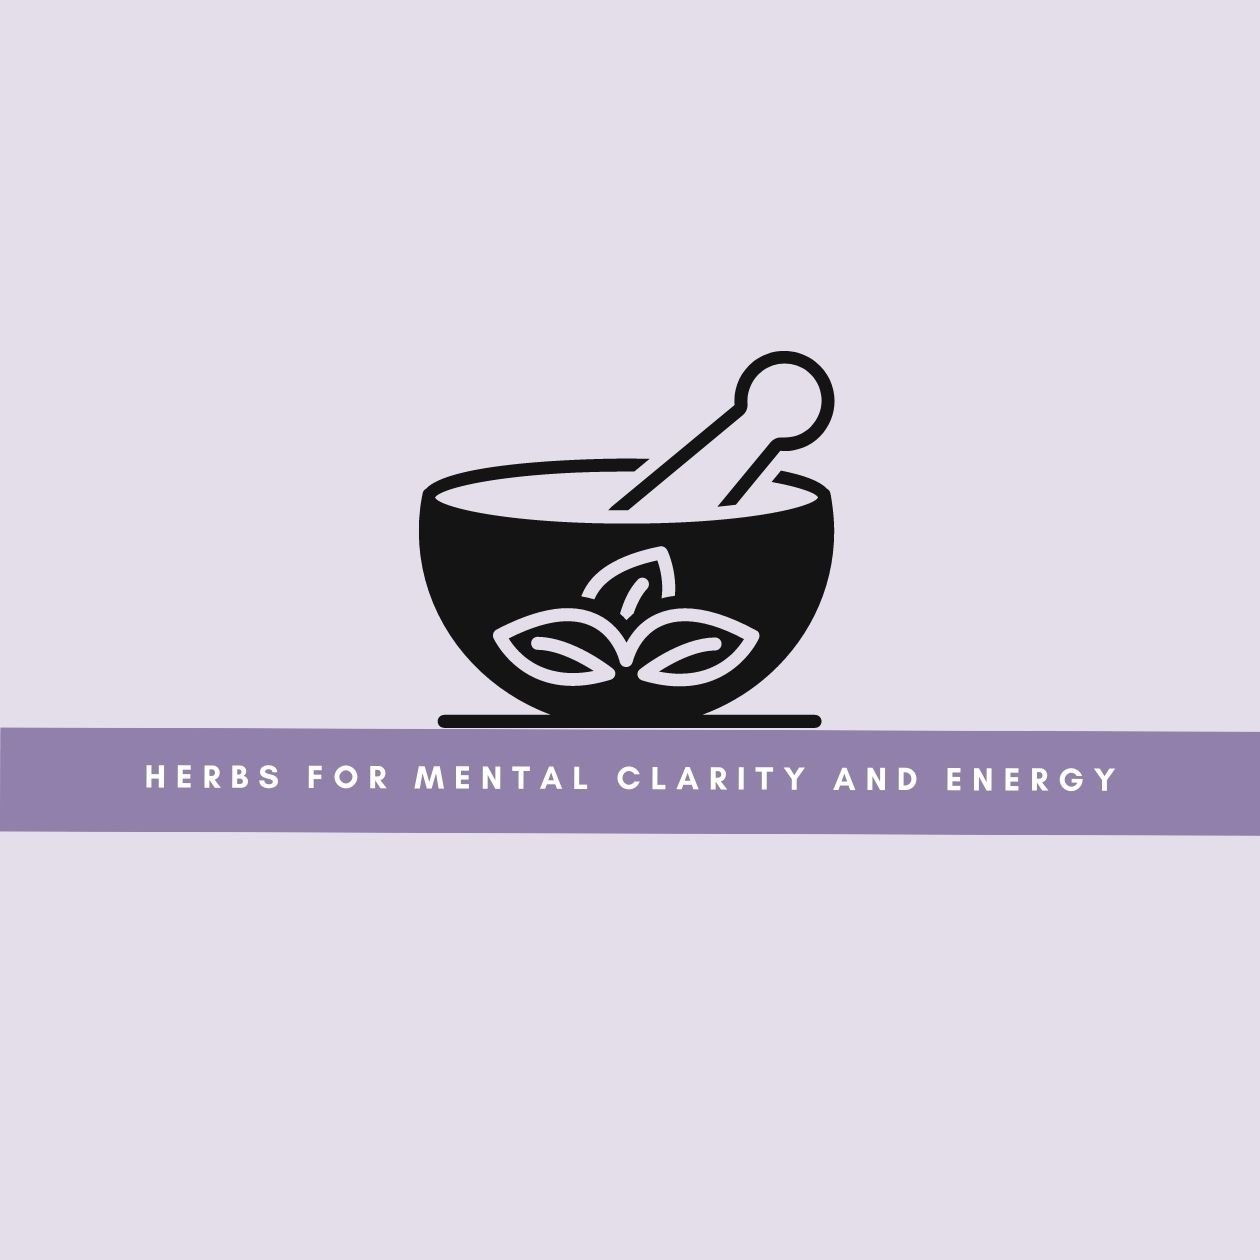 Herbs for mental clarity and energy: an illustration